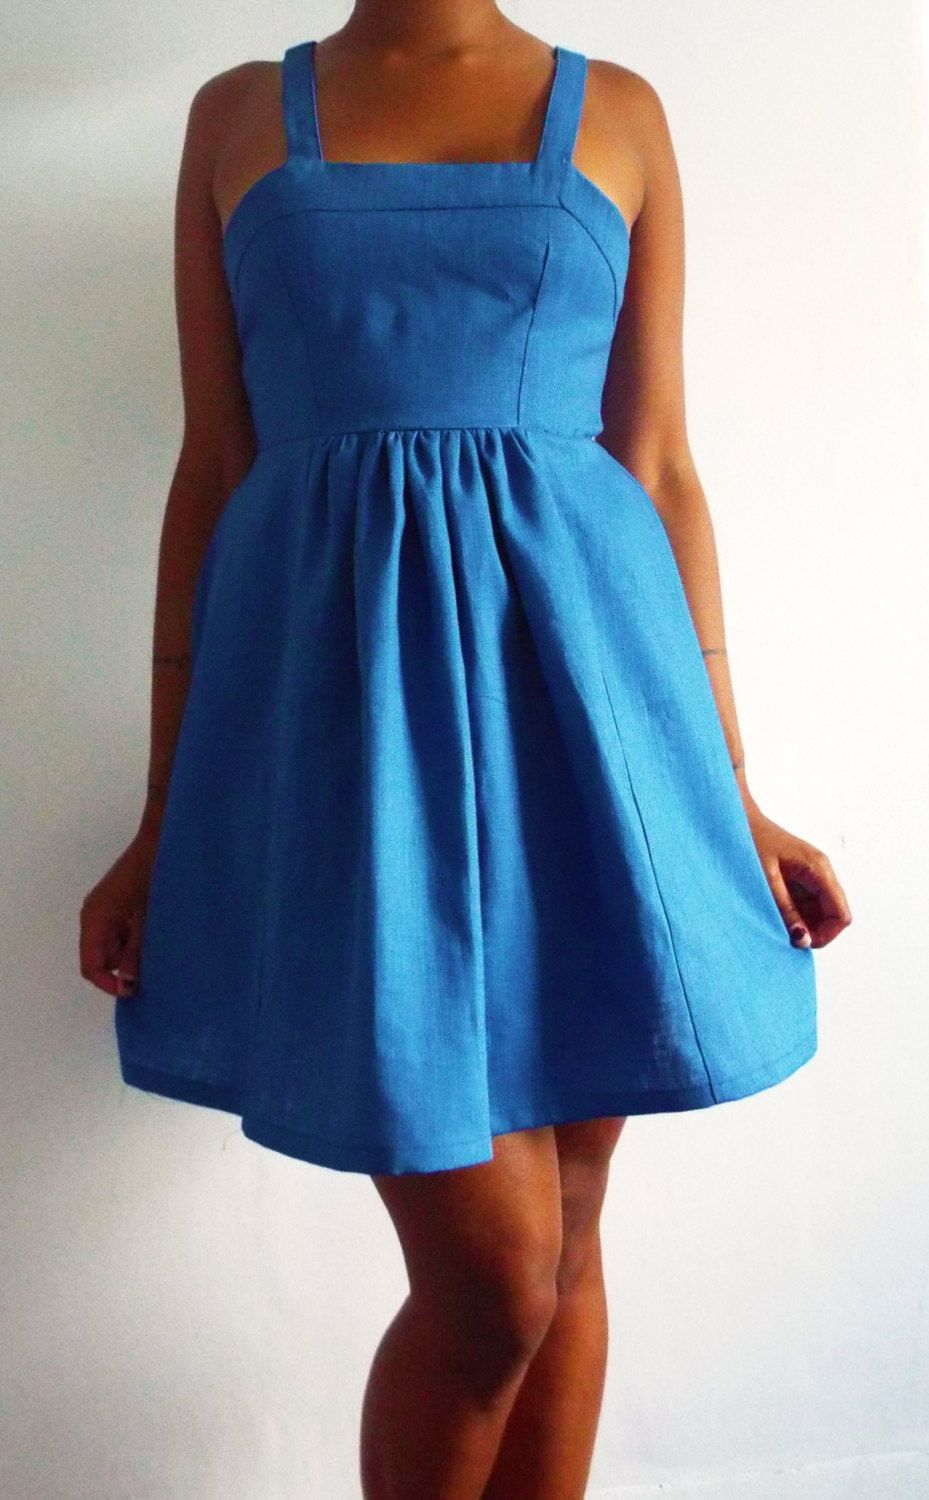 Blue Pinafore Style Dress Handmade Available in UK Size 8 10 12 by MelanieJaneBoutique on Etsy